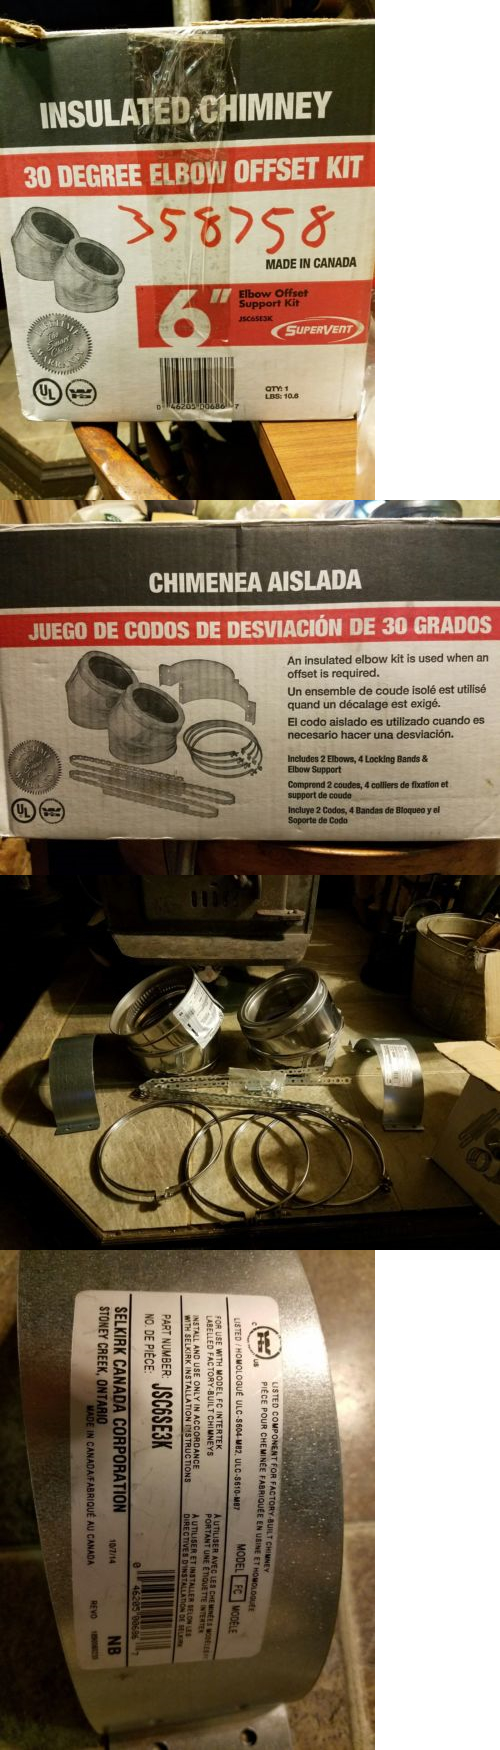 Stove and Chimney Pipes 175803: 6 Insulated Stainless Steel ...